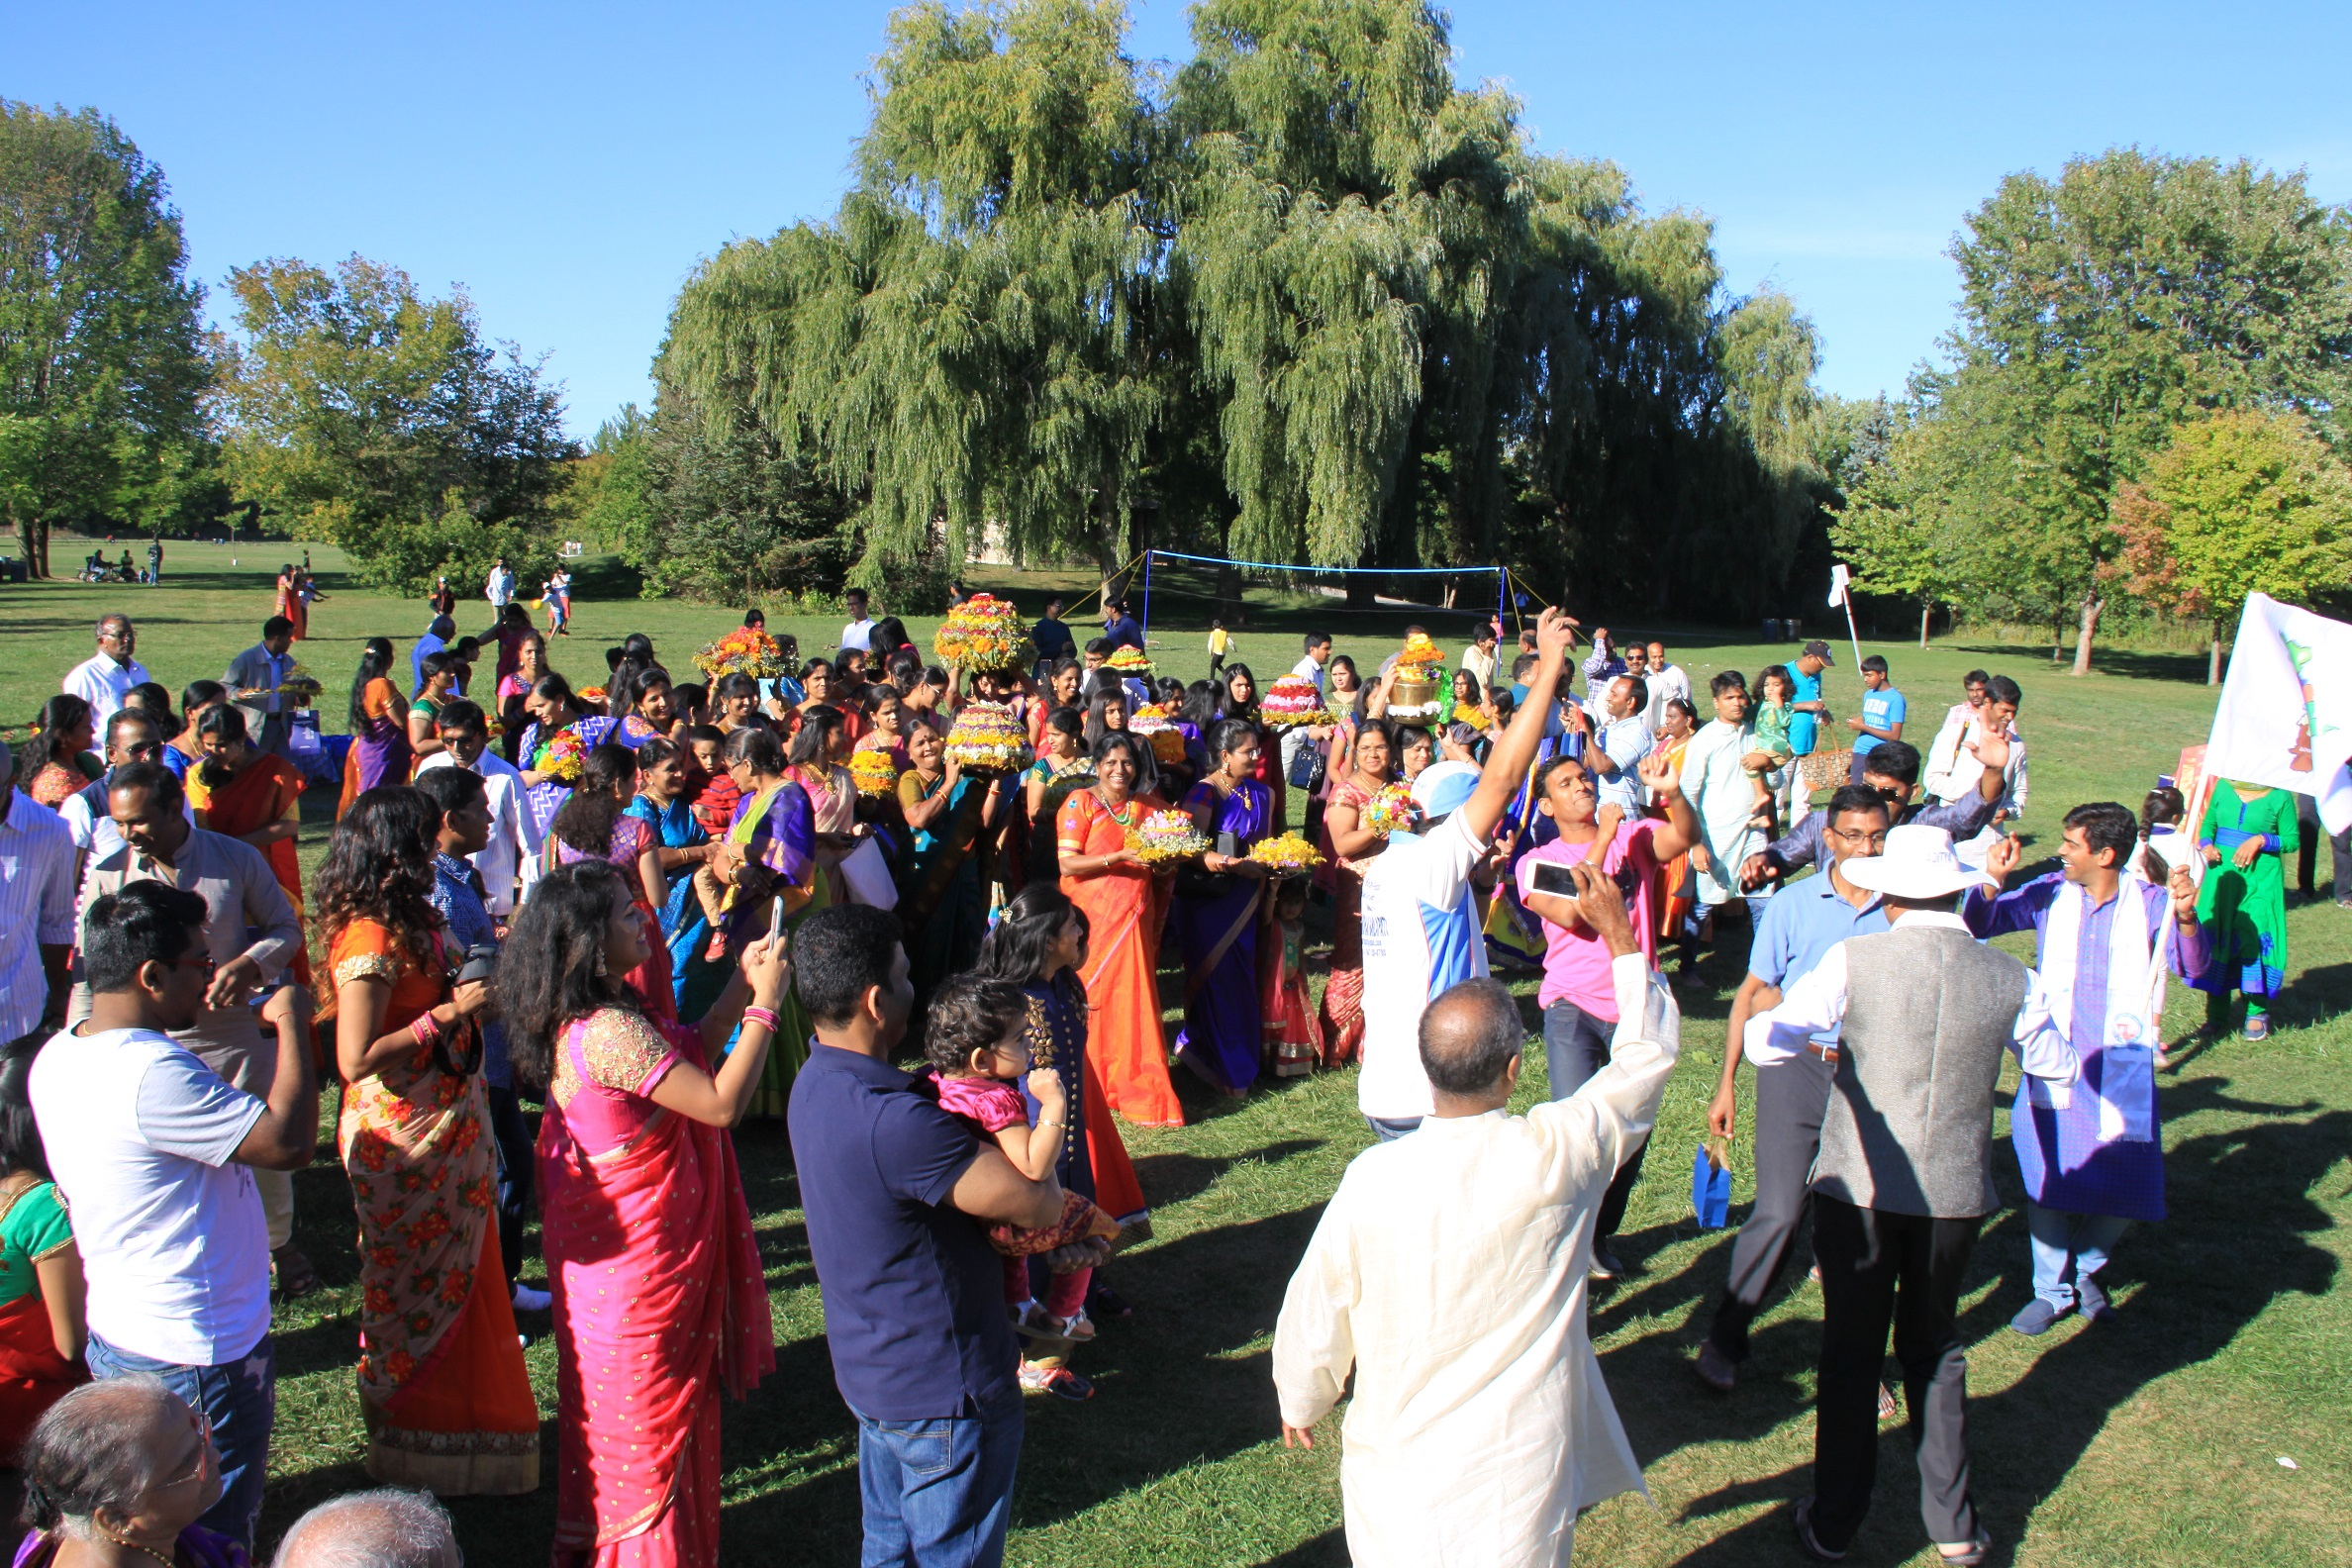 Telangana Development Forum, Canada Bathukamma Sambaralu at Meadowvale Park in Mississauga, Ontario (Province) on September 24th, 2016.